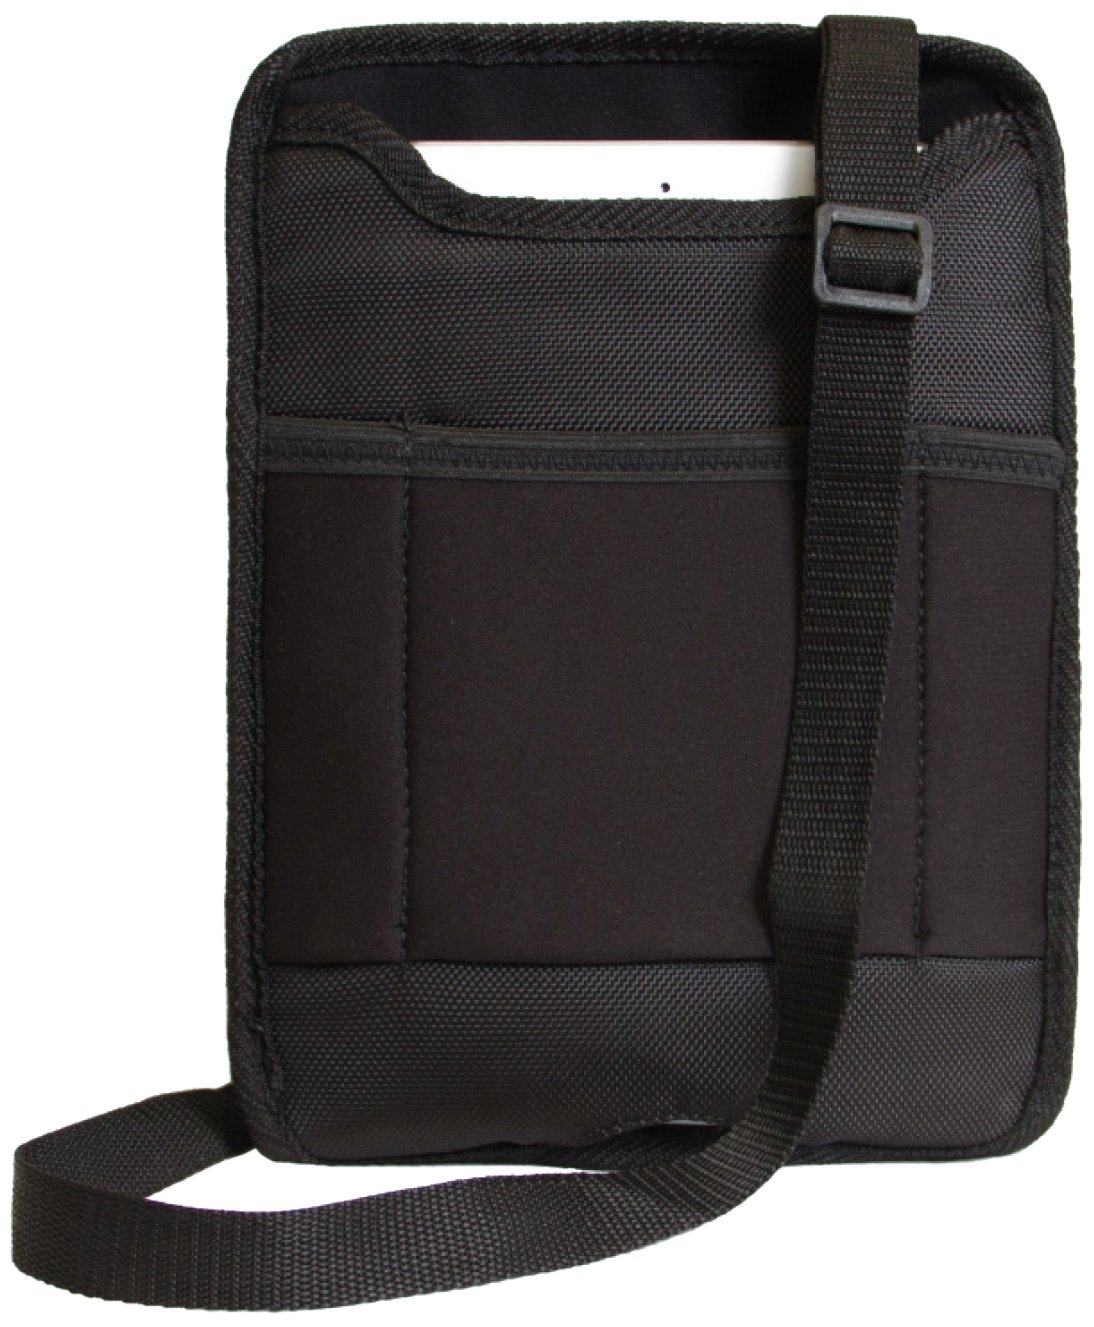 modulR Tablet Shoulder Pouch & Hip Holster (A81-30-A)